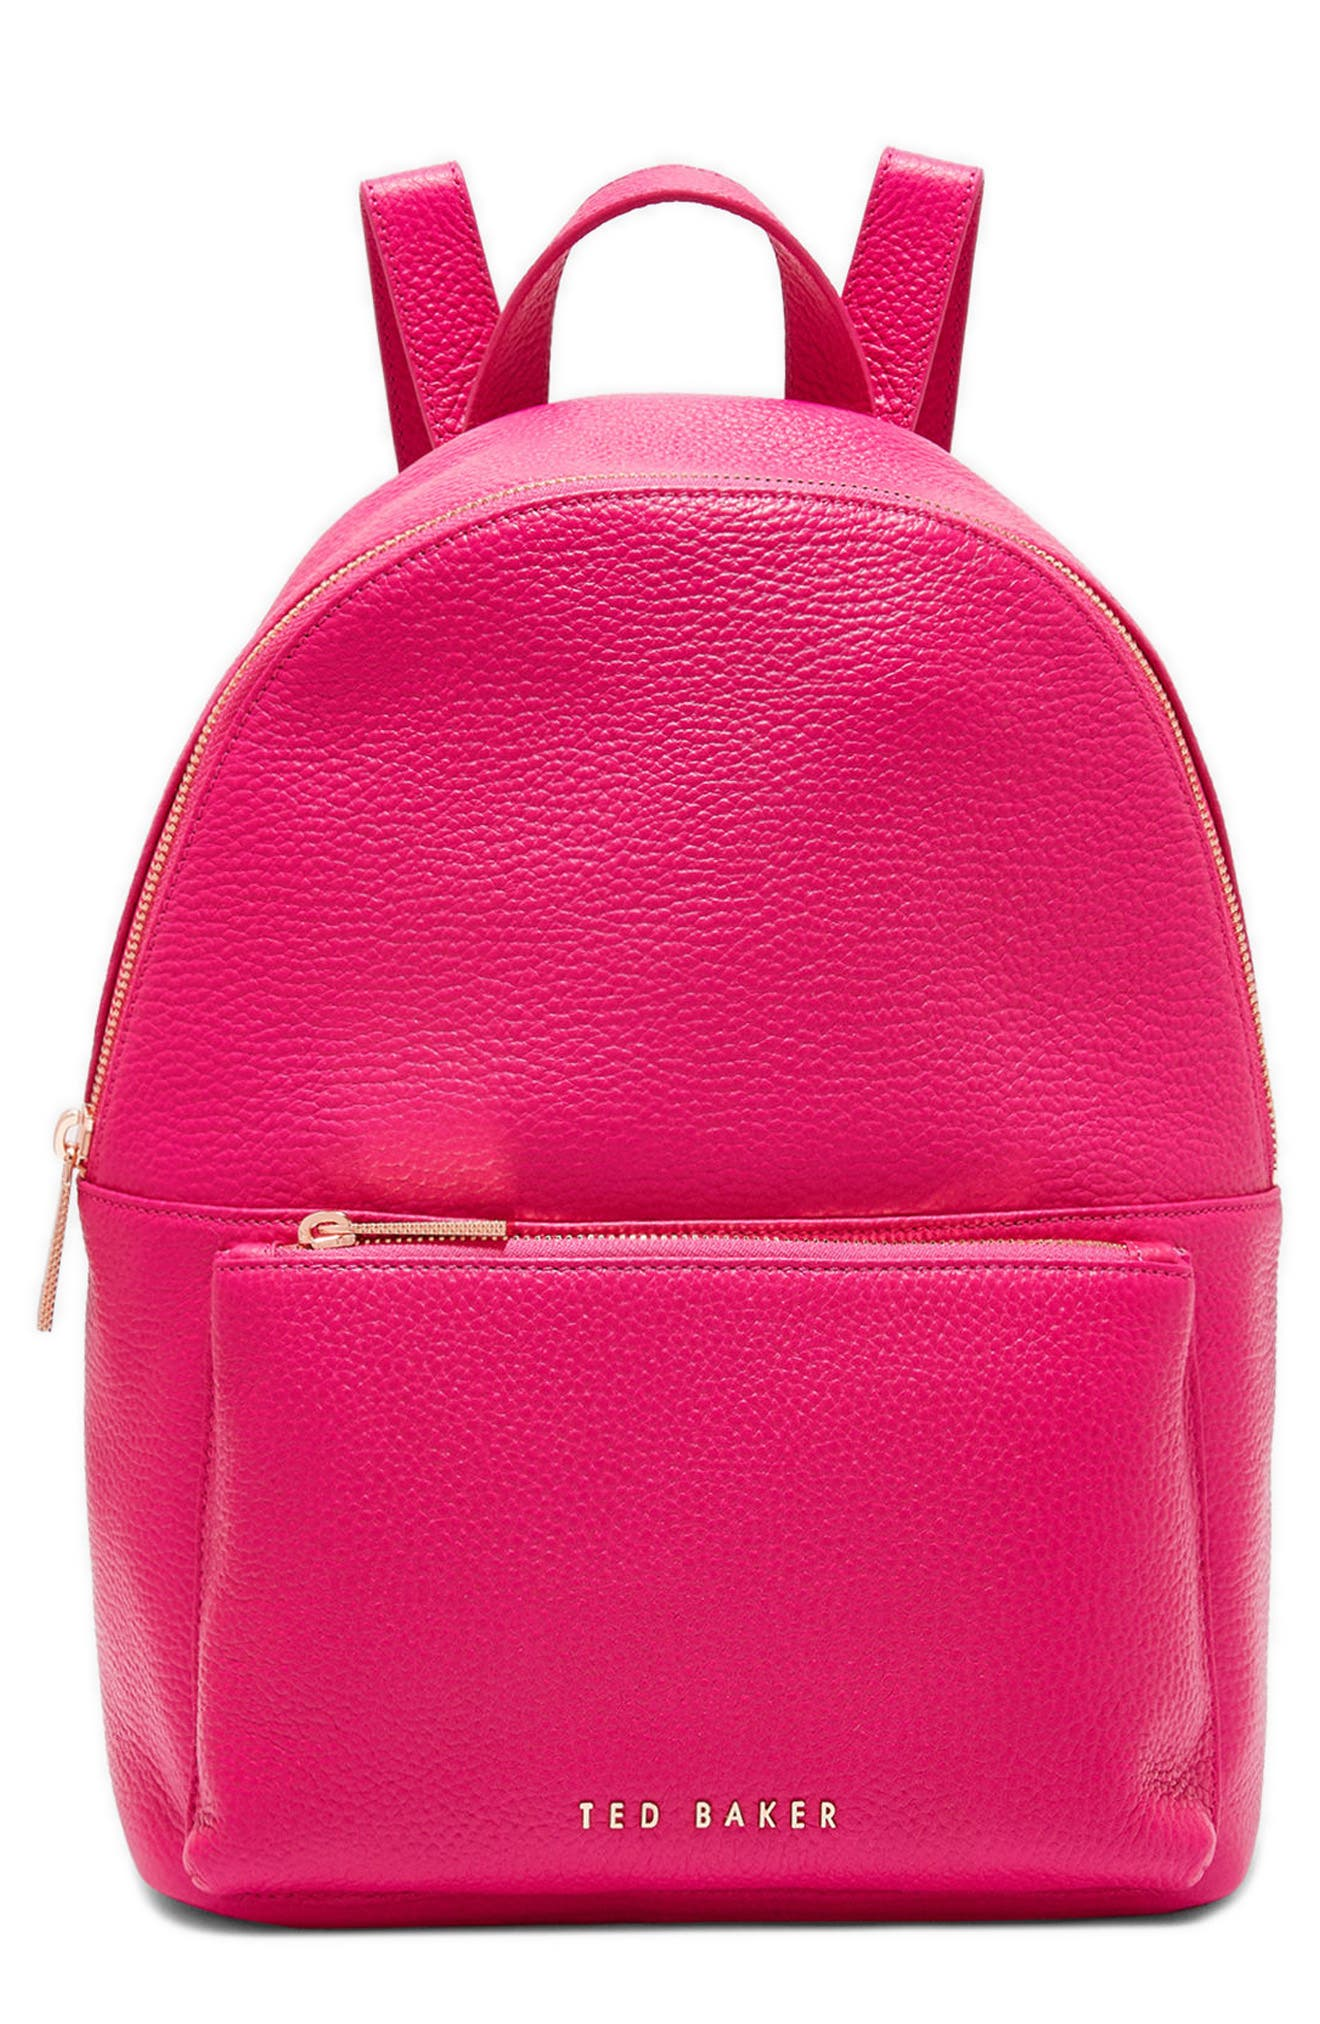 Pearen Leather Backpack,                             Main thumbnail 5, color,